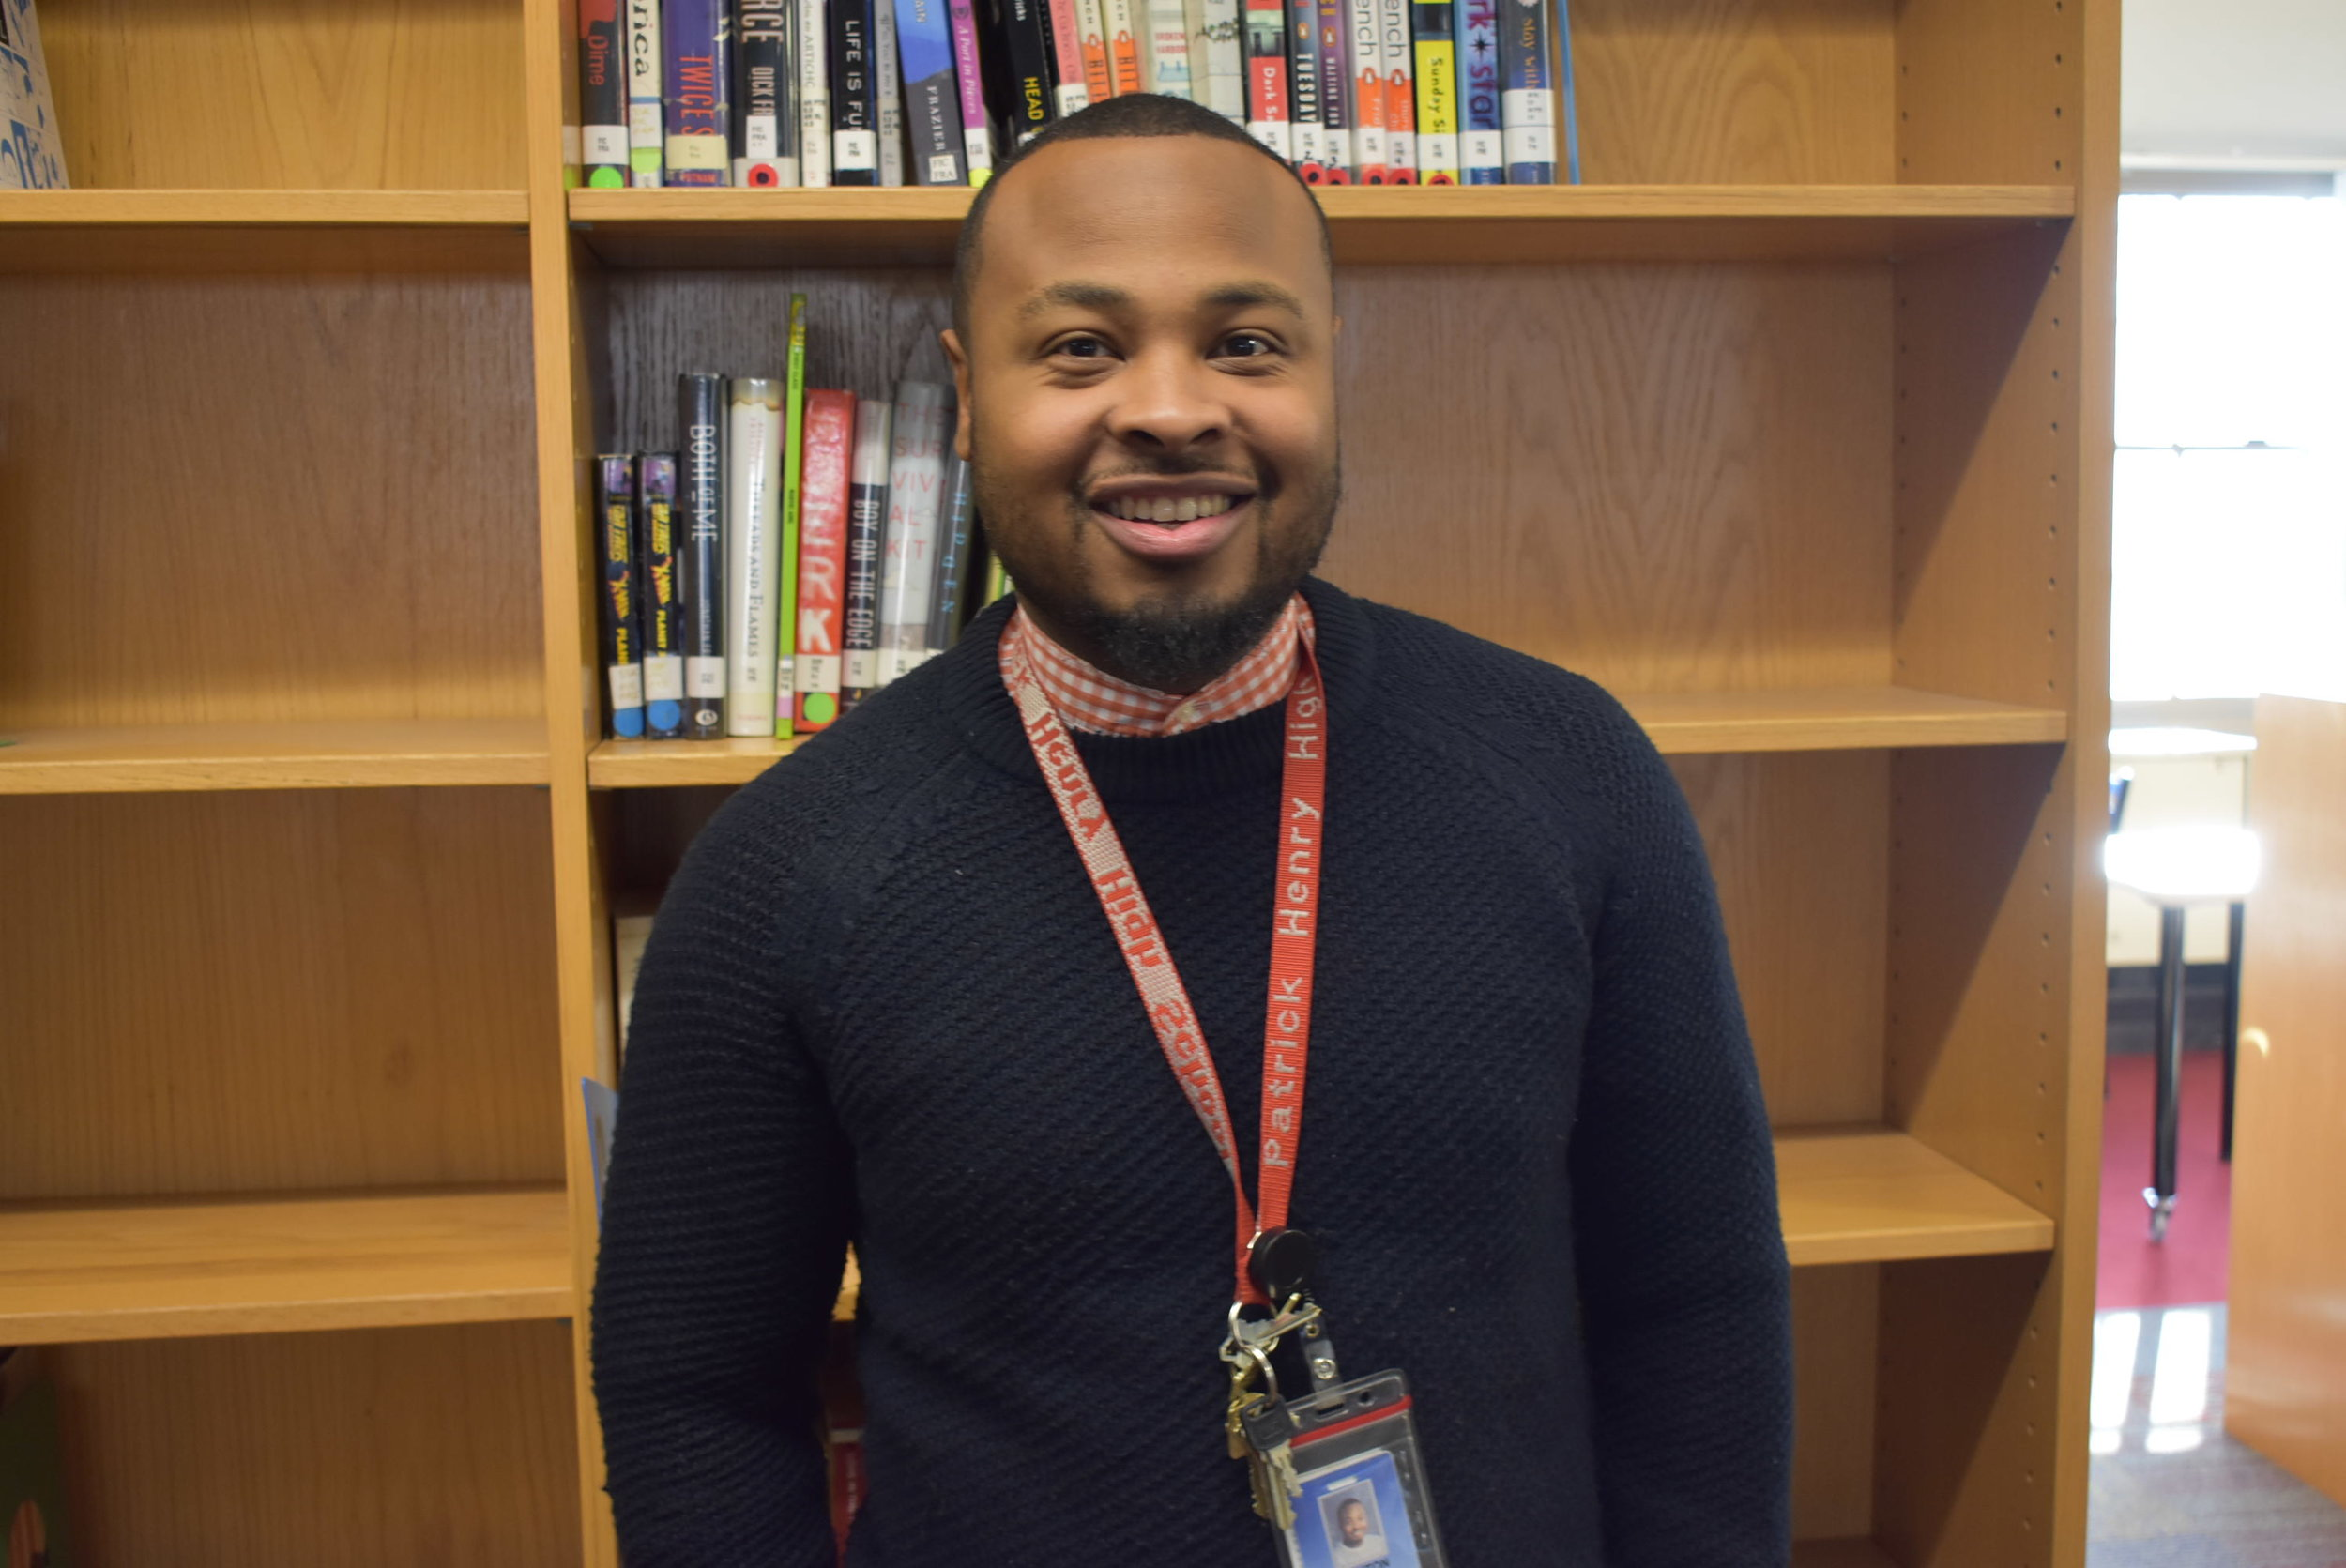 Quinton Bonds is a longtime staff member at Patrick Henry High School. Photo by Cirien Saadeh